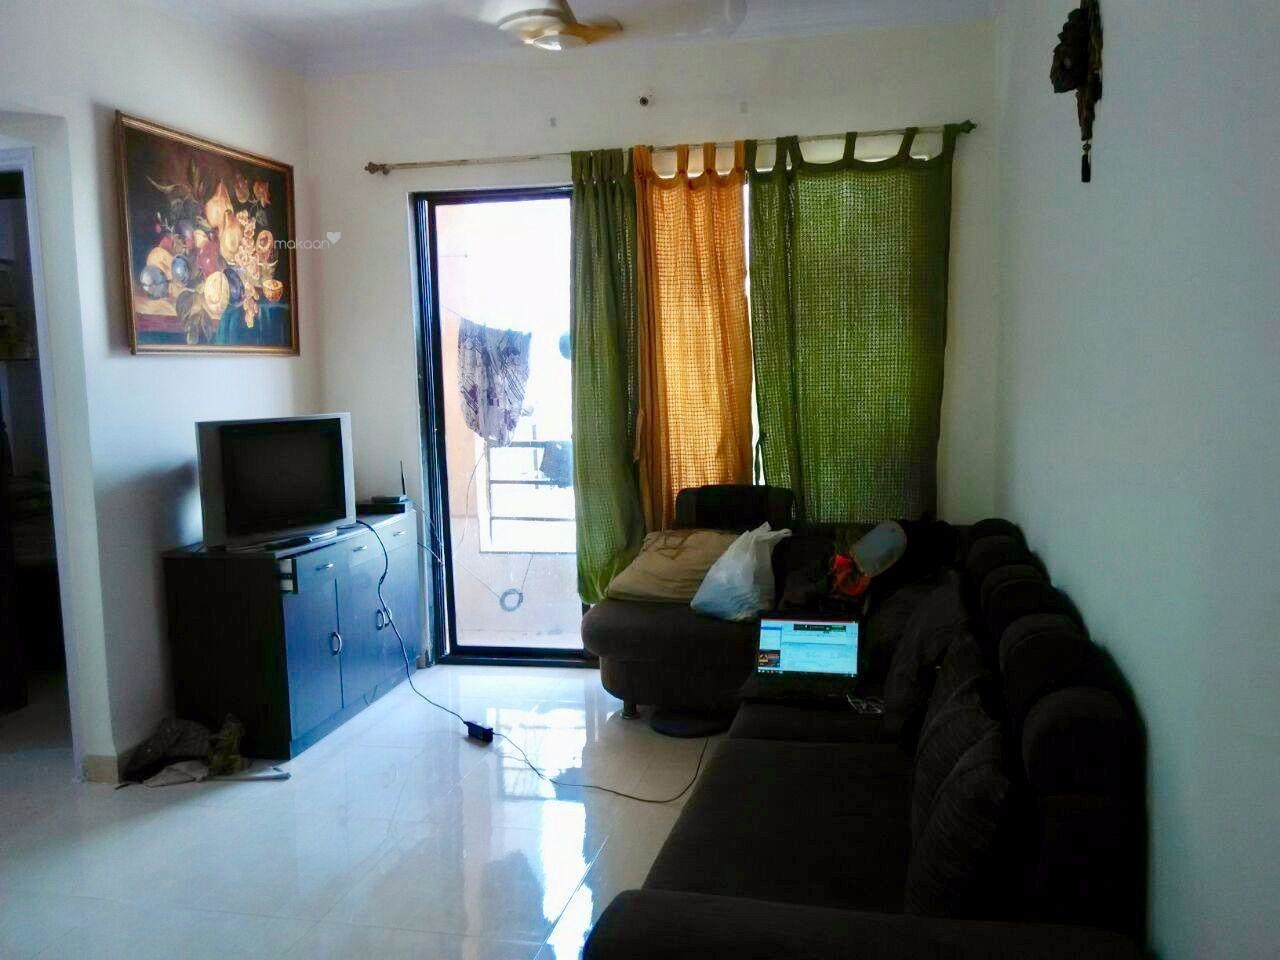 680 sq ft 1BHK 1BHK+2T (680 sq ft) Property By Shree Real Estate In Project, Ghansoli